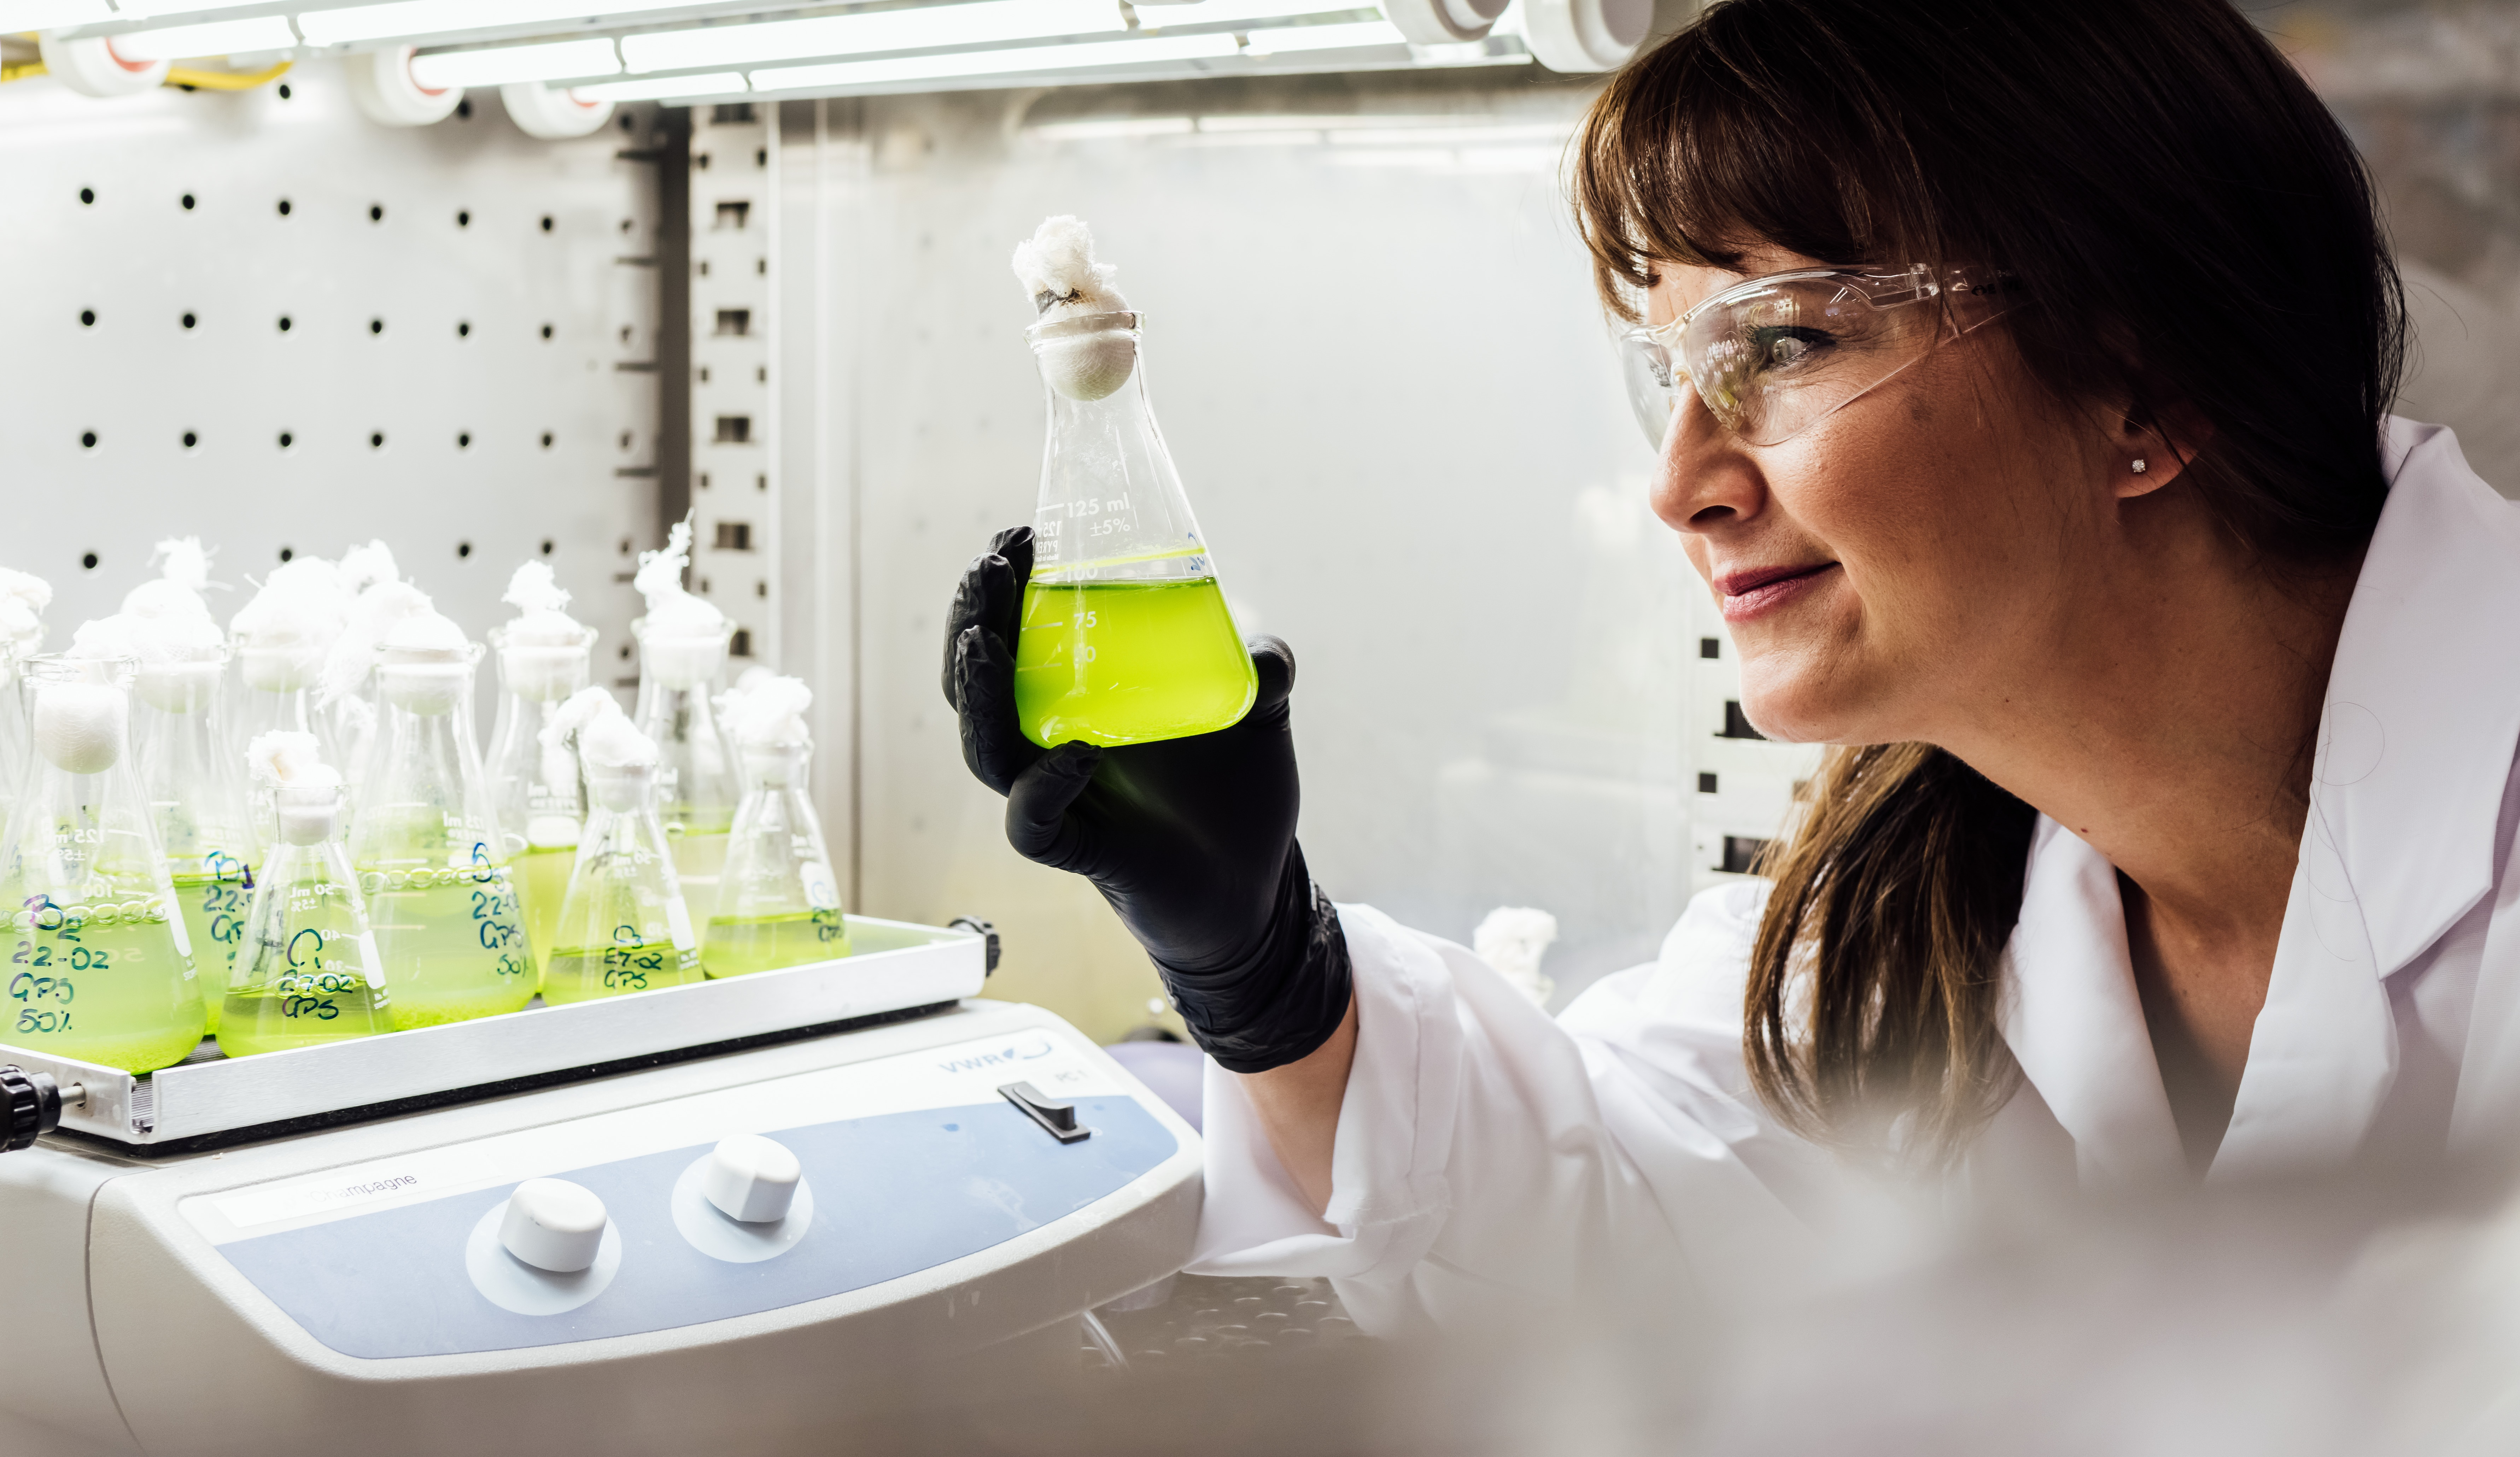 Algae Research in the Lab